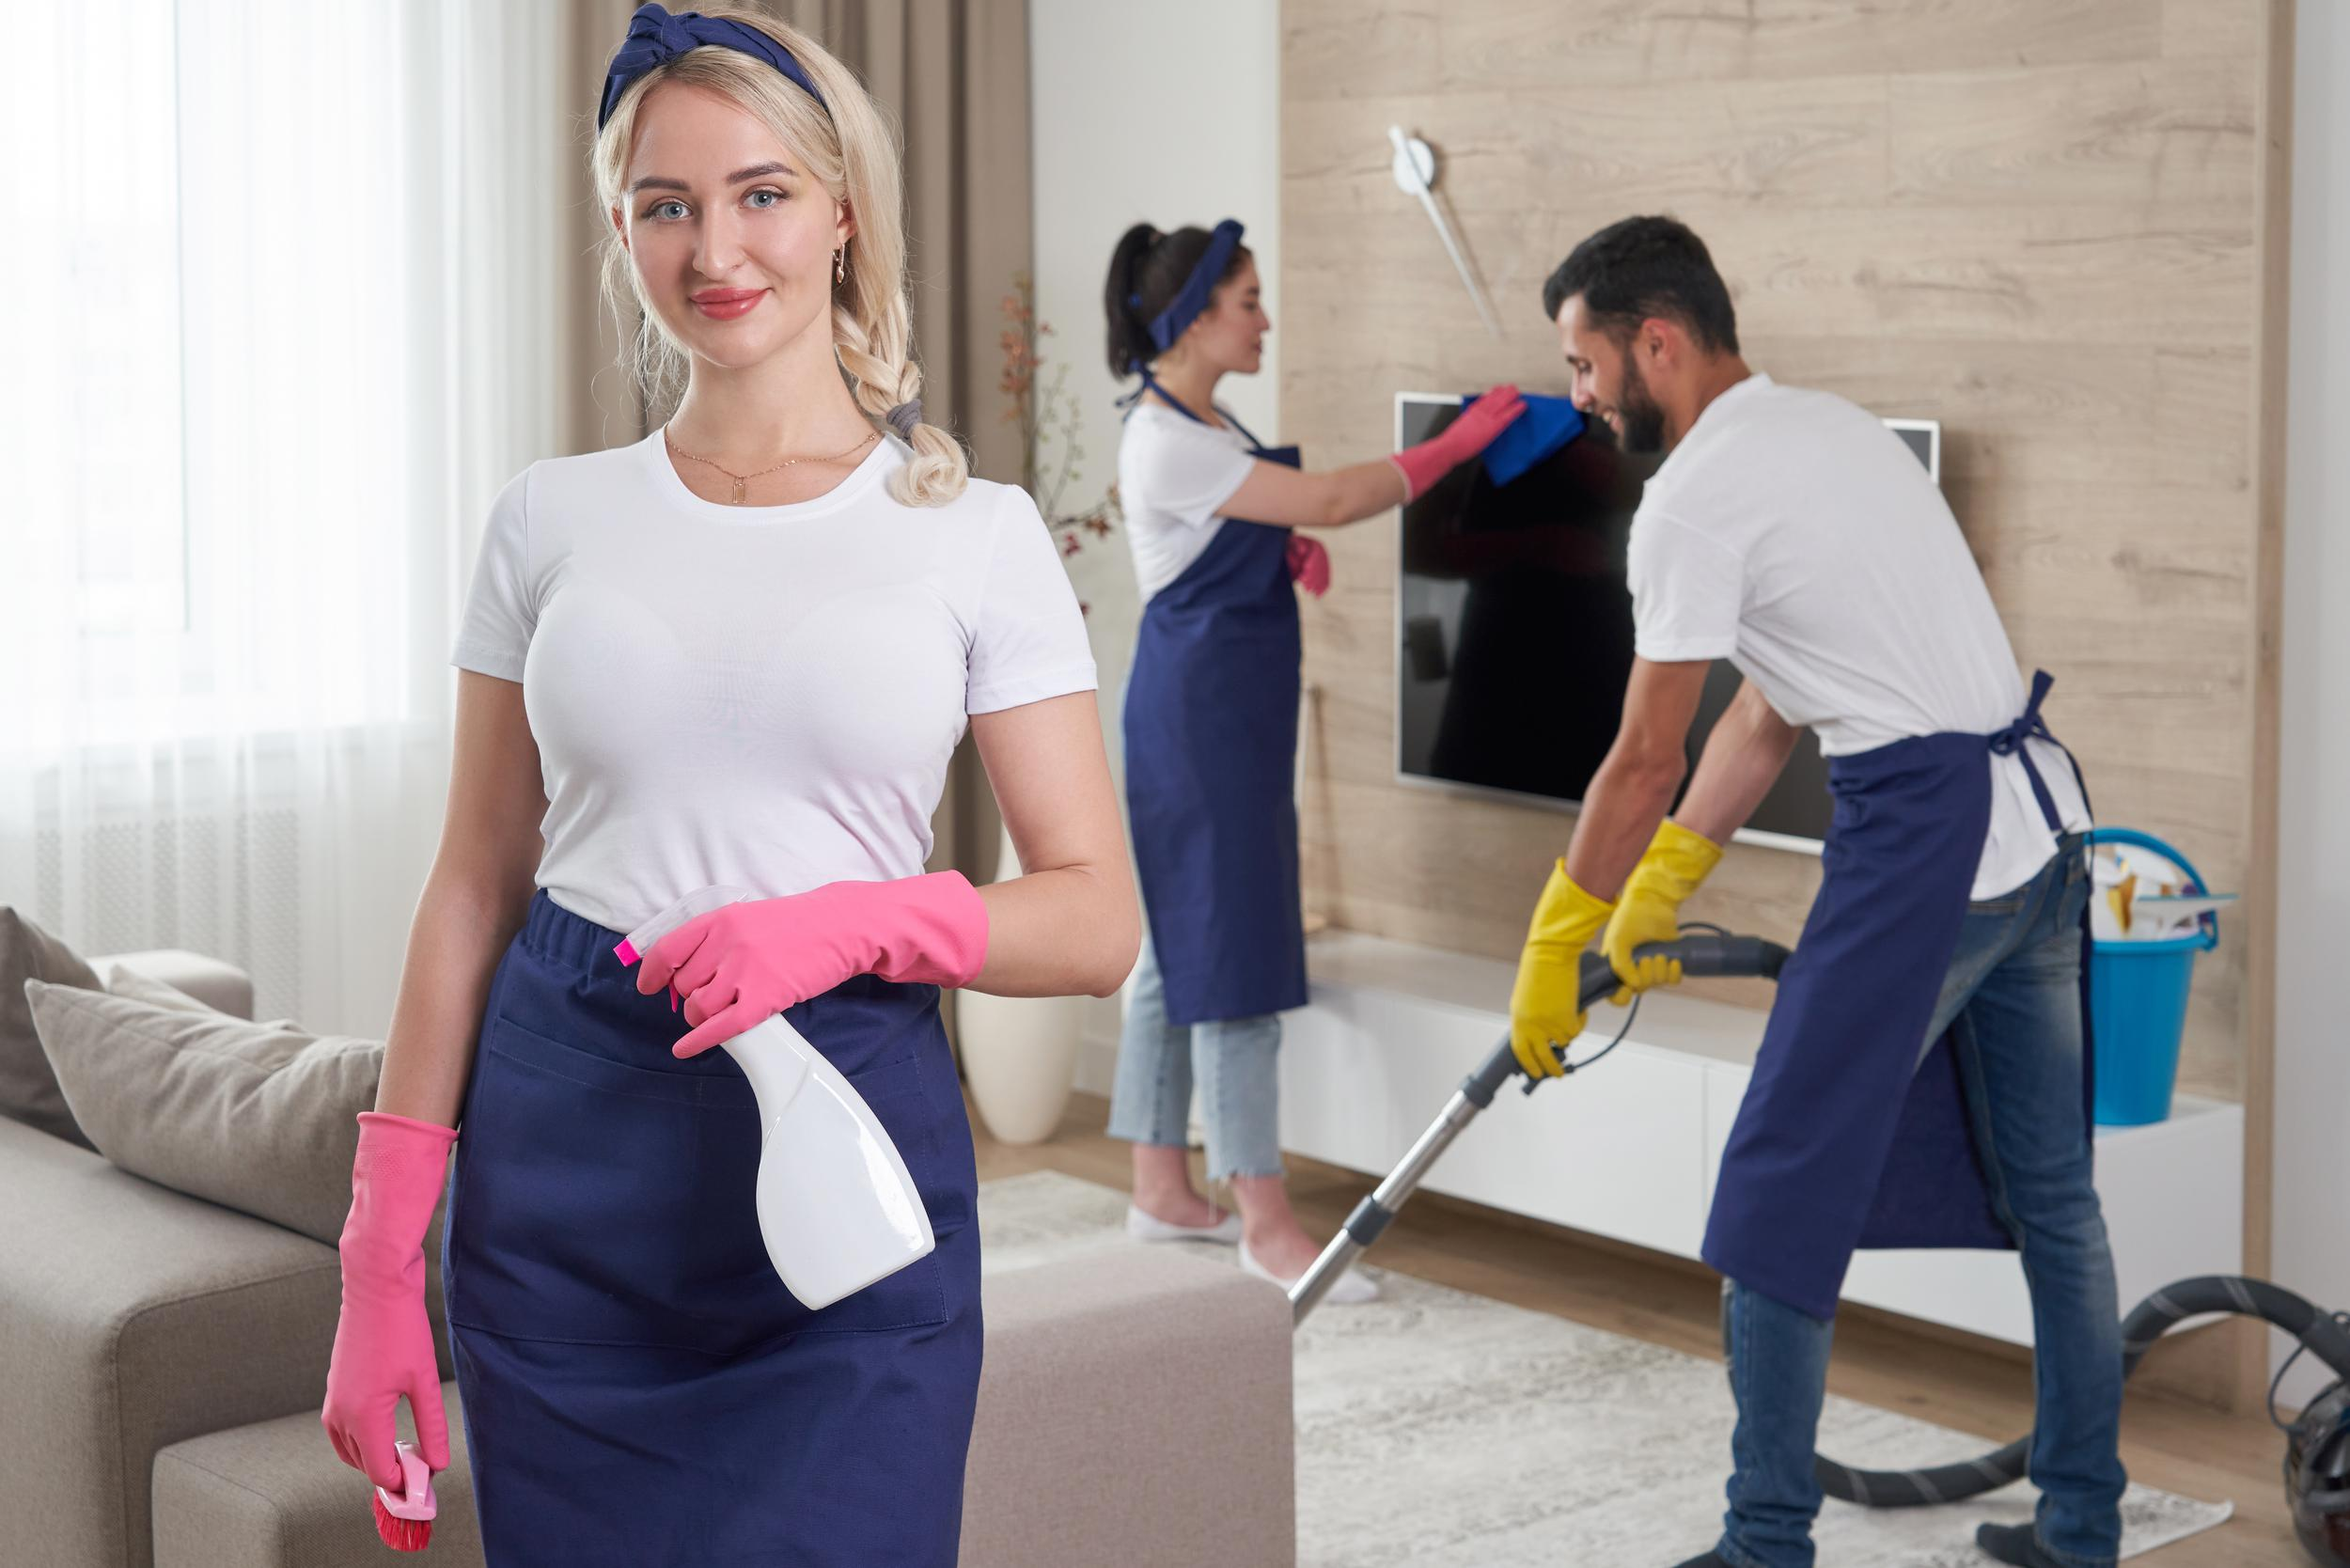 professional-cleaning-service-team-cleans-living-room-modern-apartment.jpg